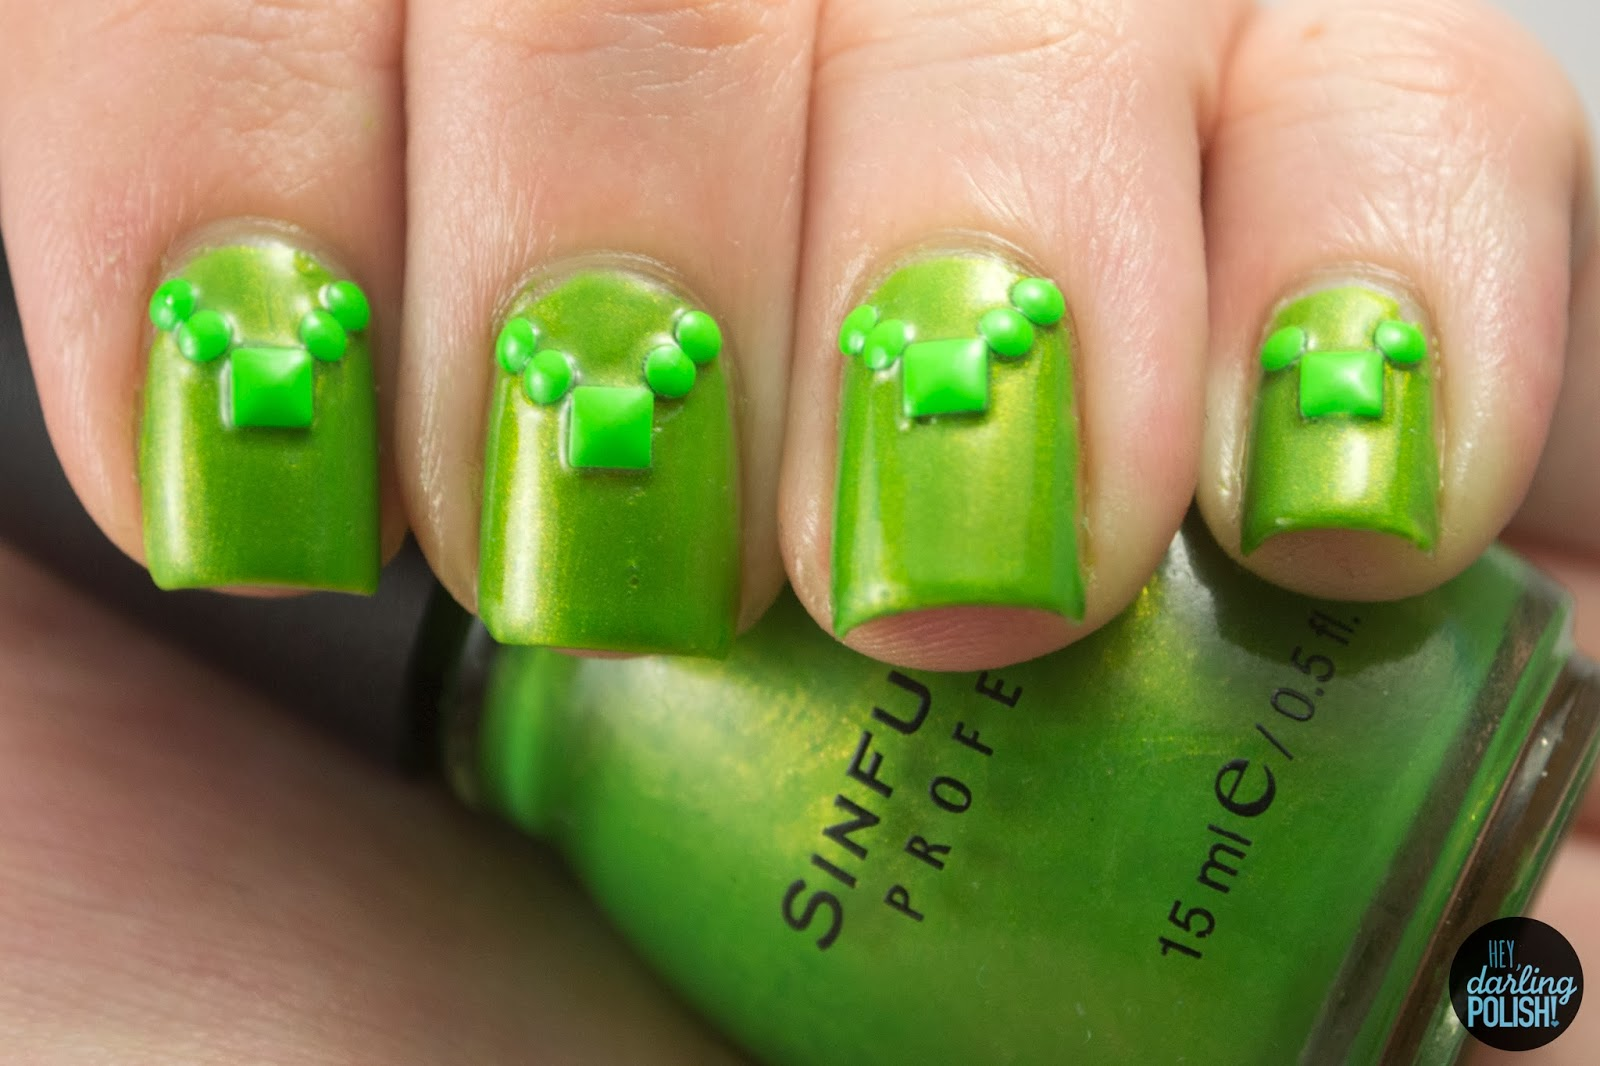 nails, nail art, nail polish, polish, studs, green, golden oldie thursdays, hey darling polishnails, nail art, nail polish, polish, studs, green, golden oldie thursdays, hey darling polish